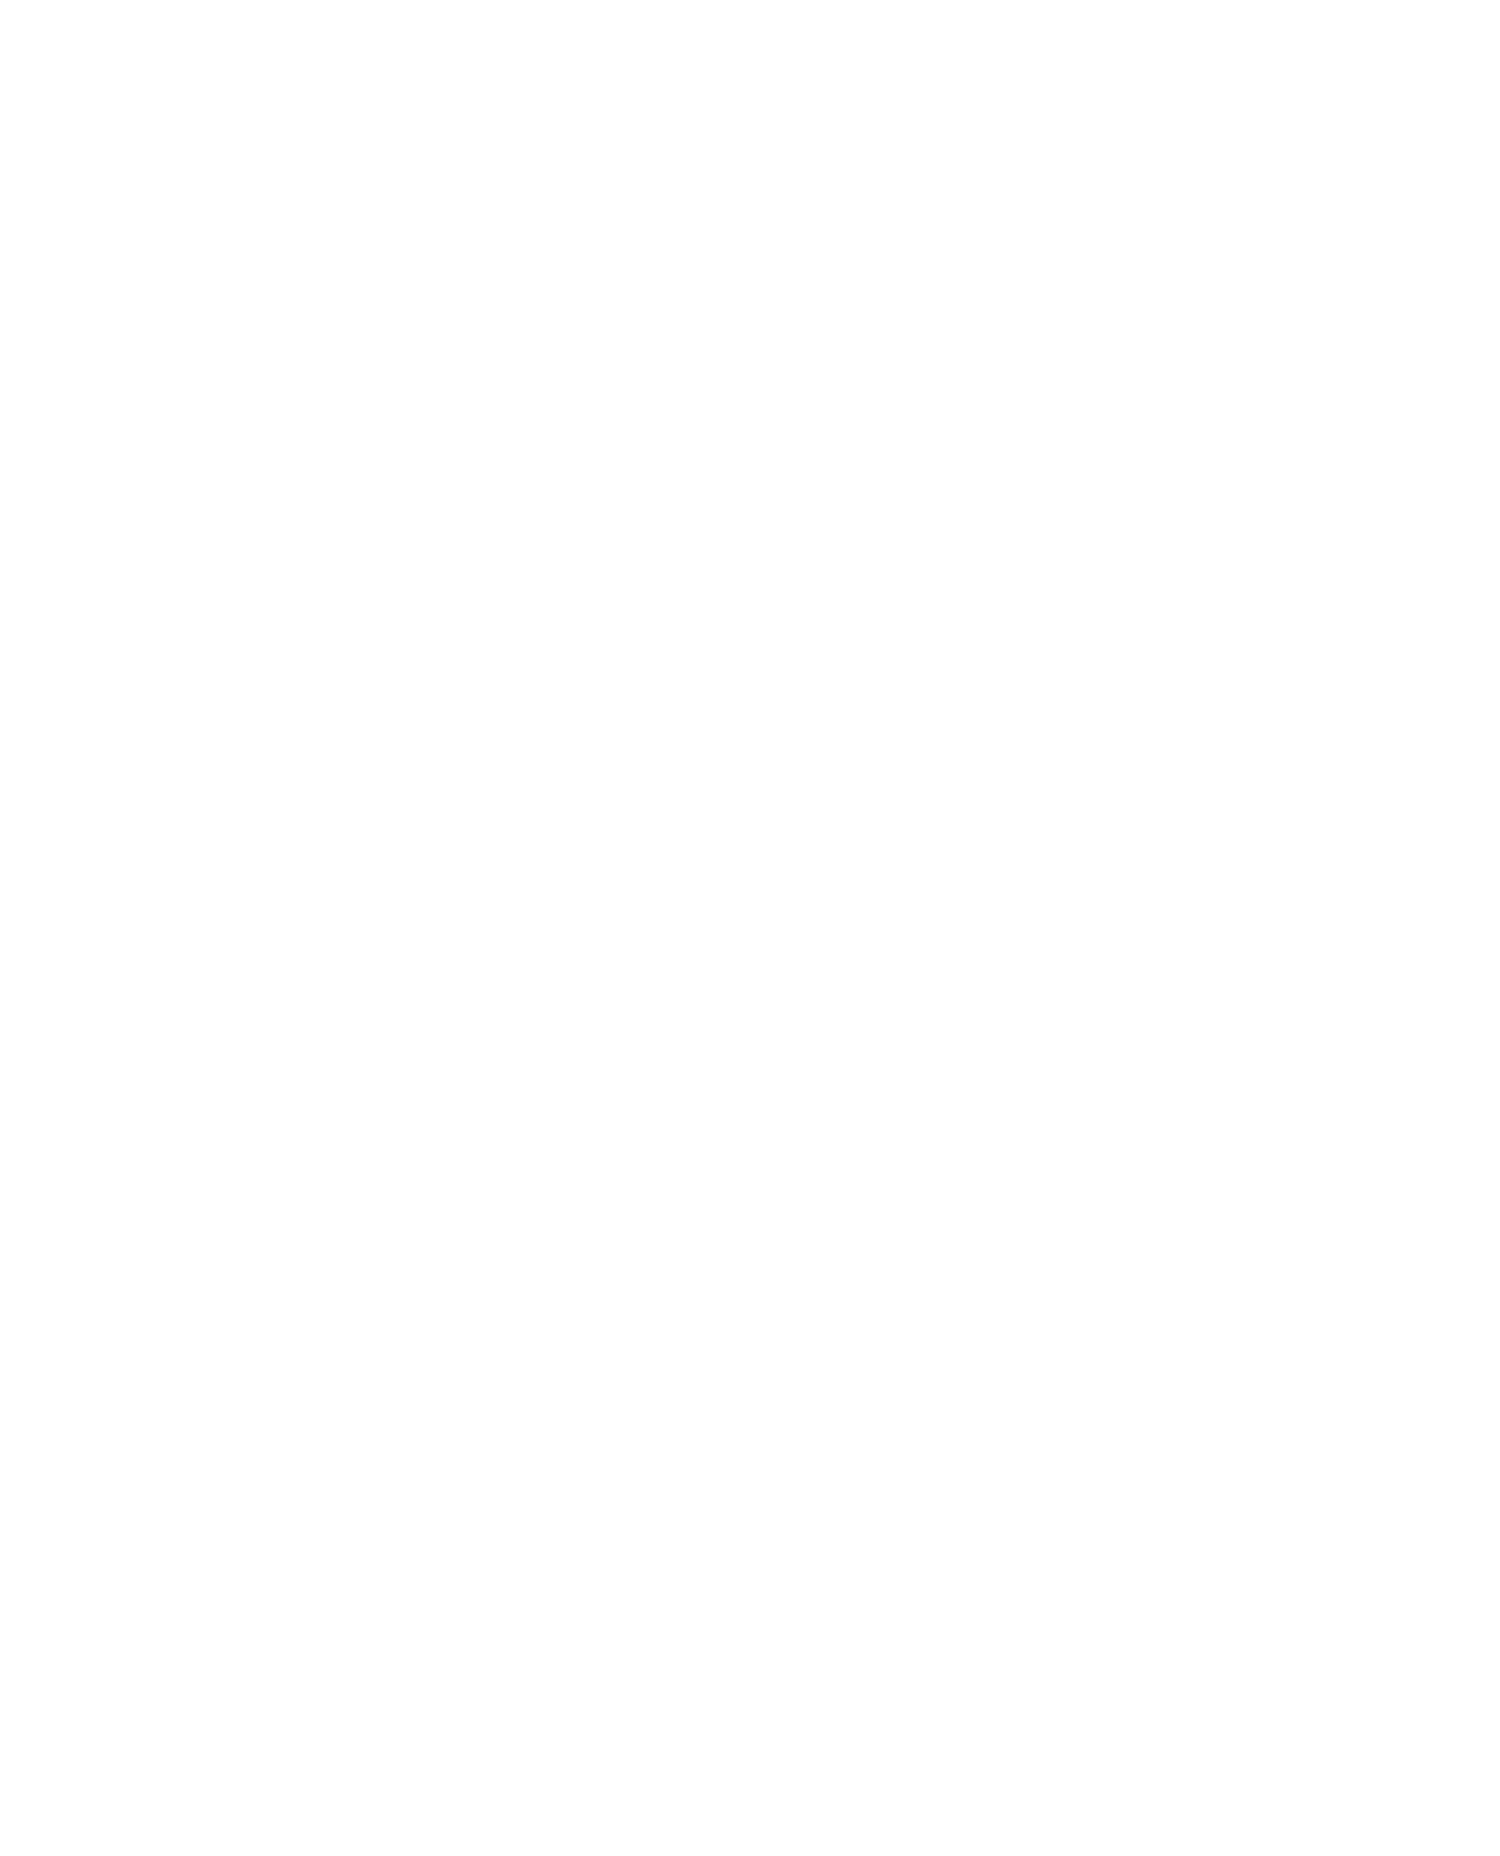 The Union Drifters | Official Site